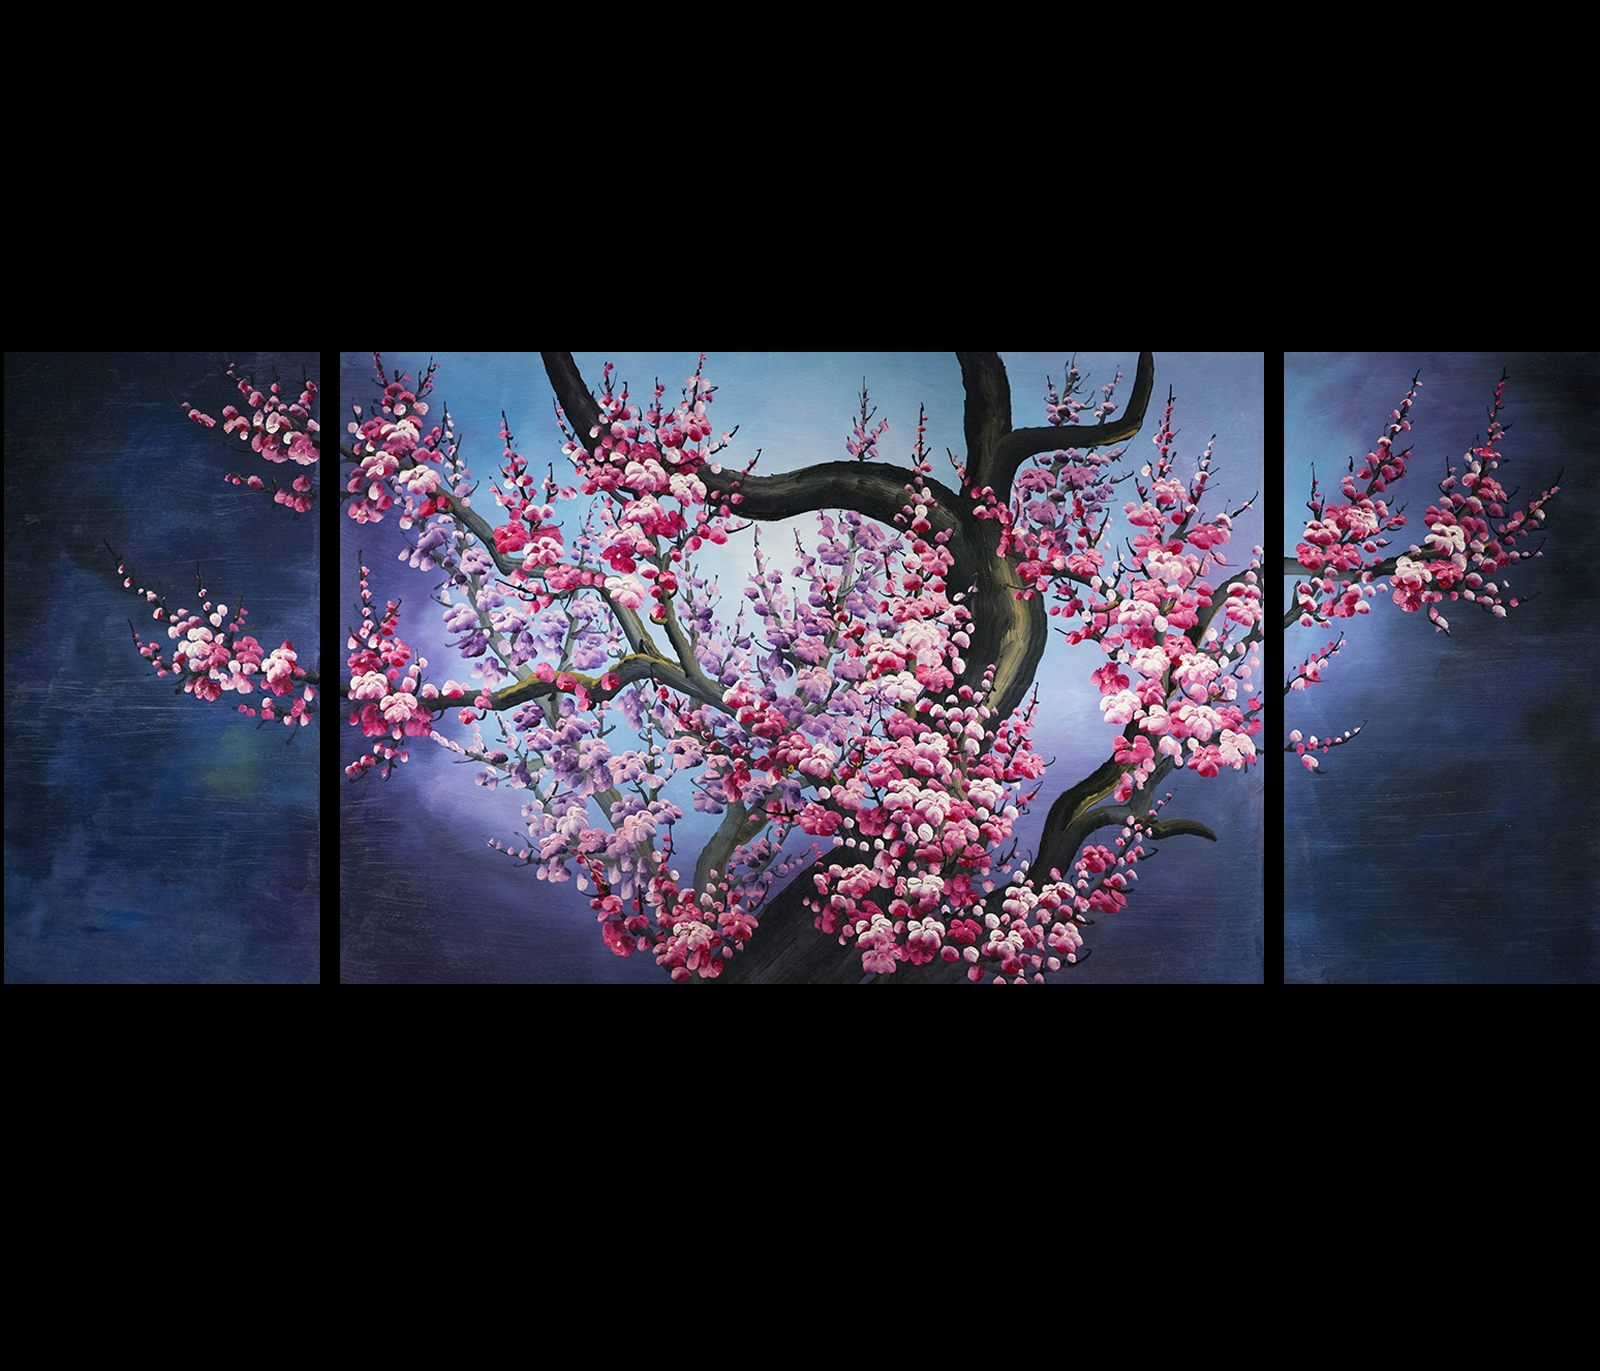 Japanese Cherry Blossom Painting Abstract Art Canvas Wall Art Within 2018 Abstract Cherry Blossom Wall Art (View 14 of 20)